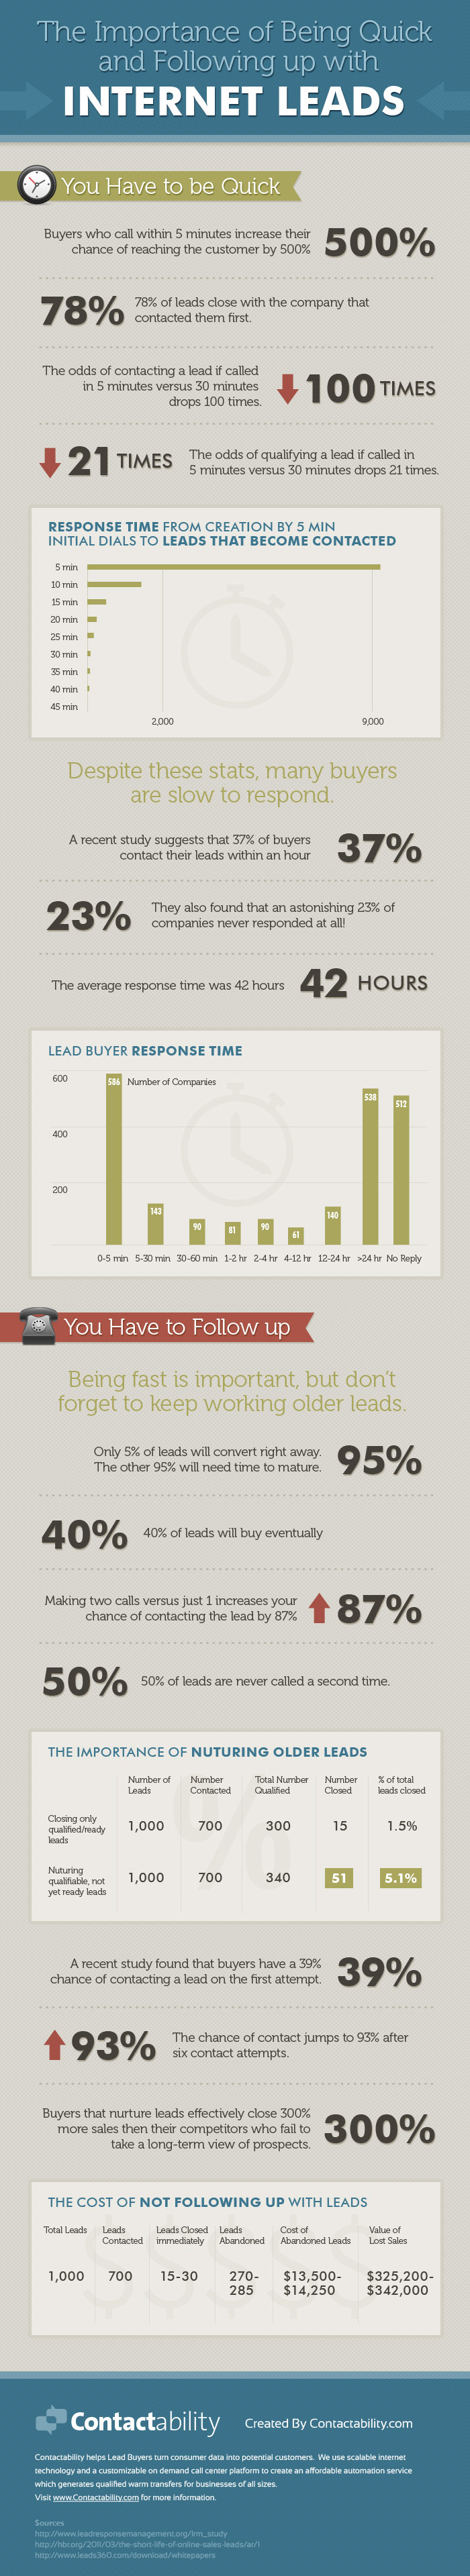 The Importance of Being Quick and Following up with Internet Leads